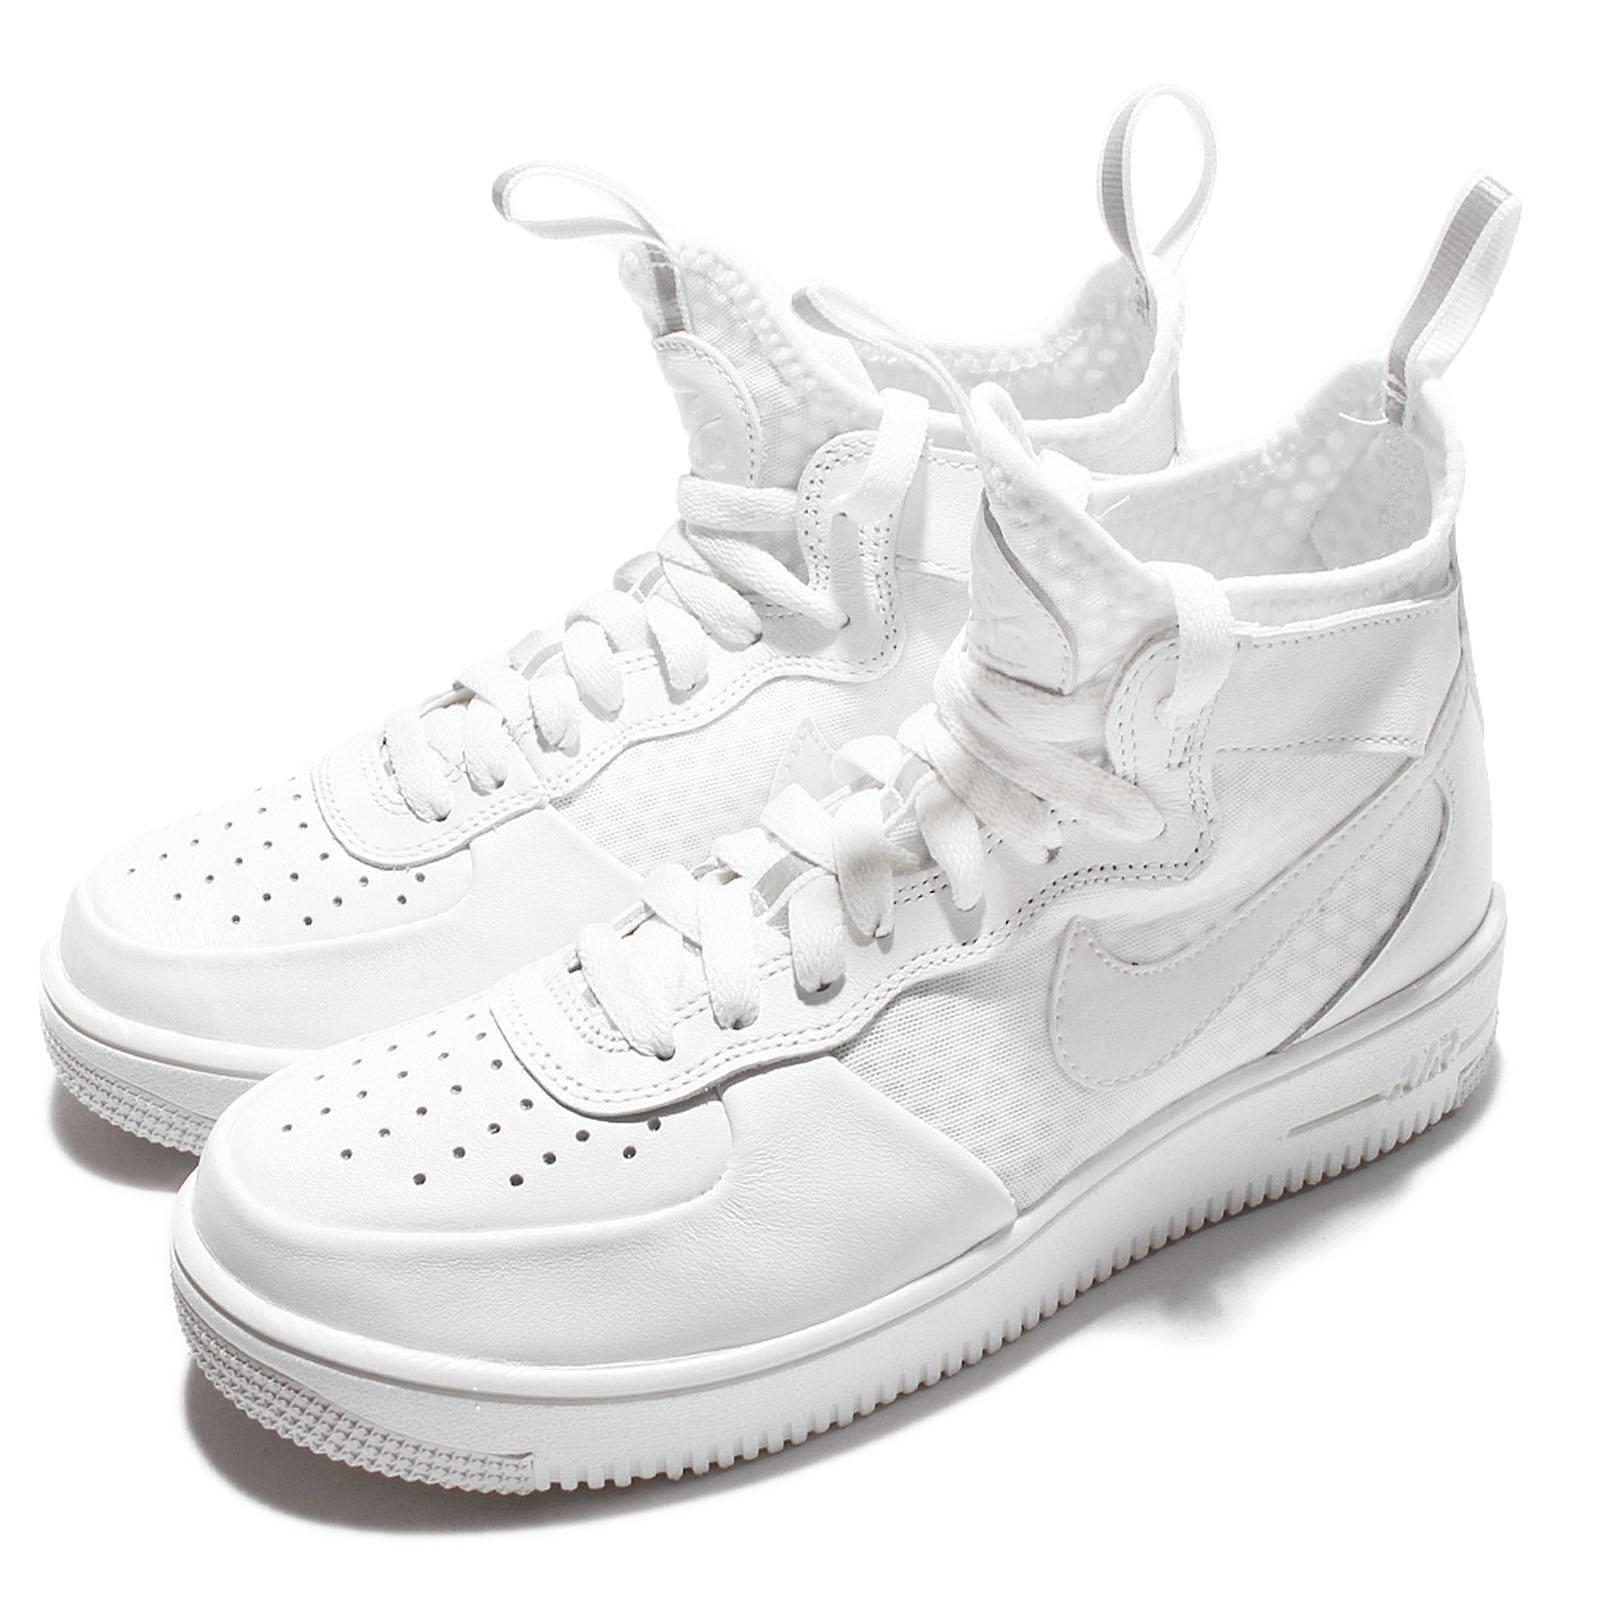 Wmns Nike Air Force 1 Ultraforce Triple White Women Mid AF1 Shoes 864025-100